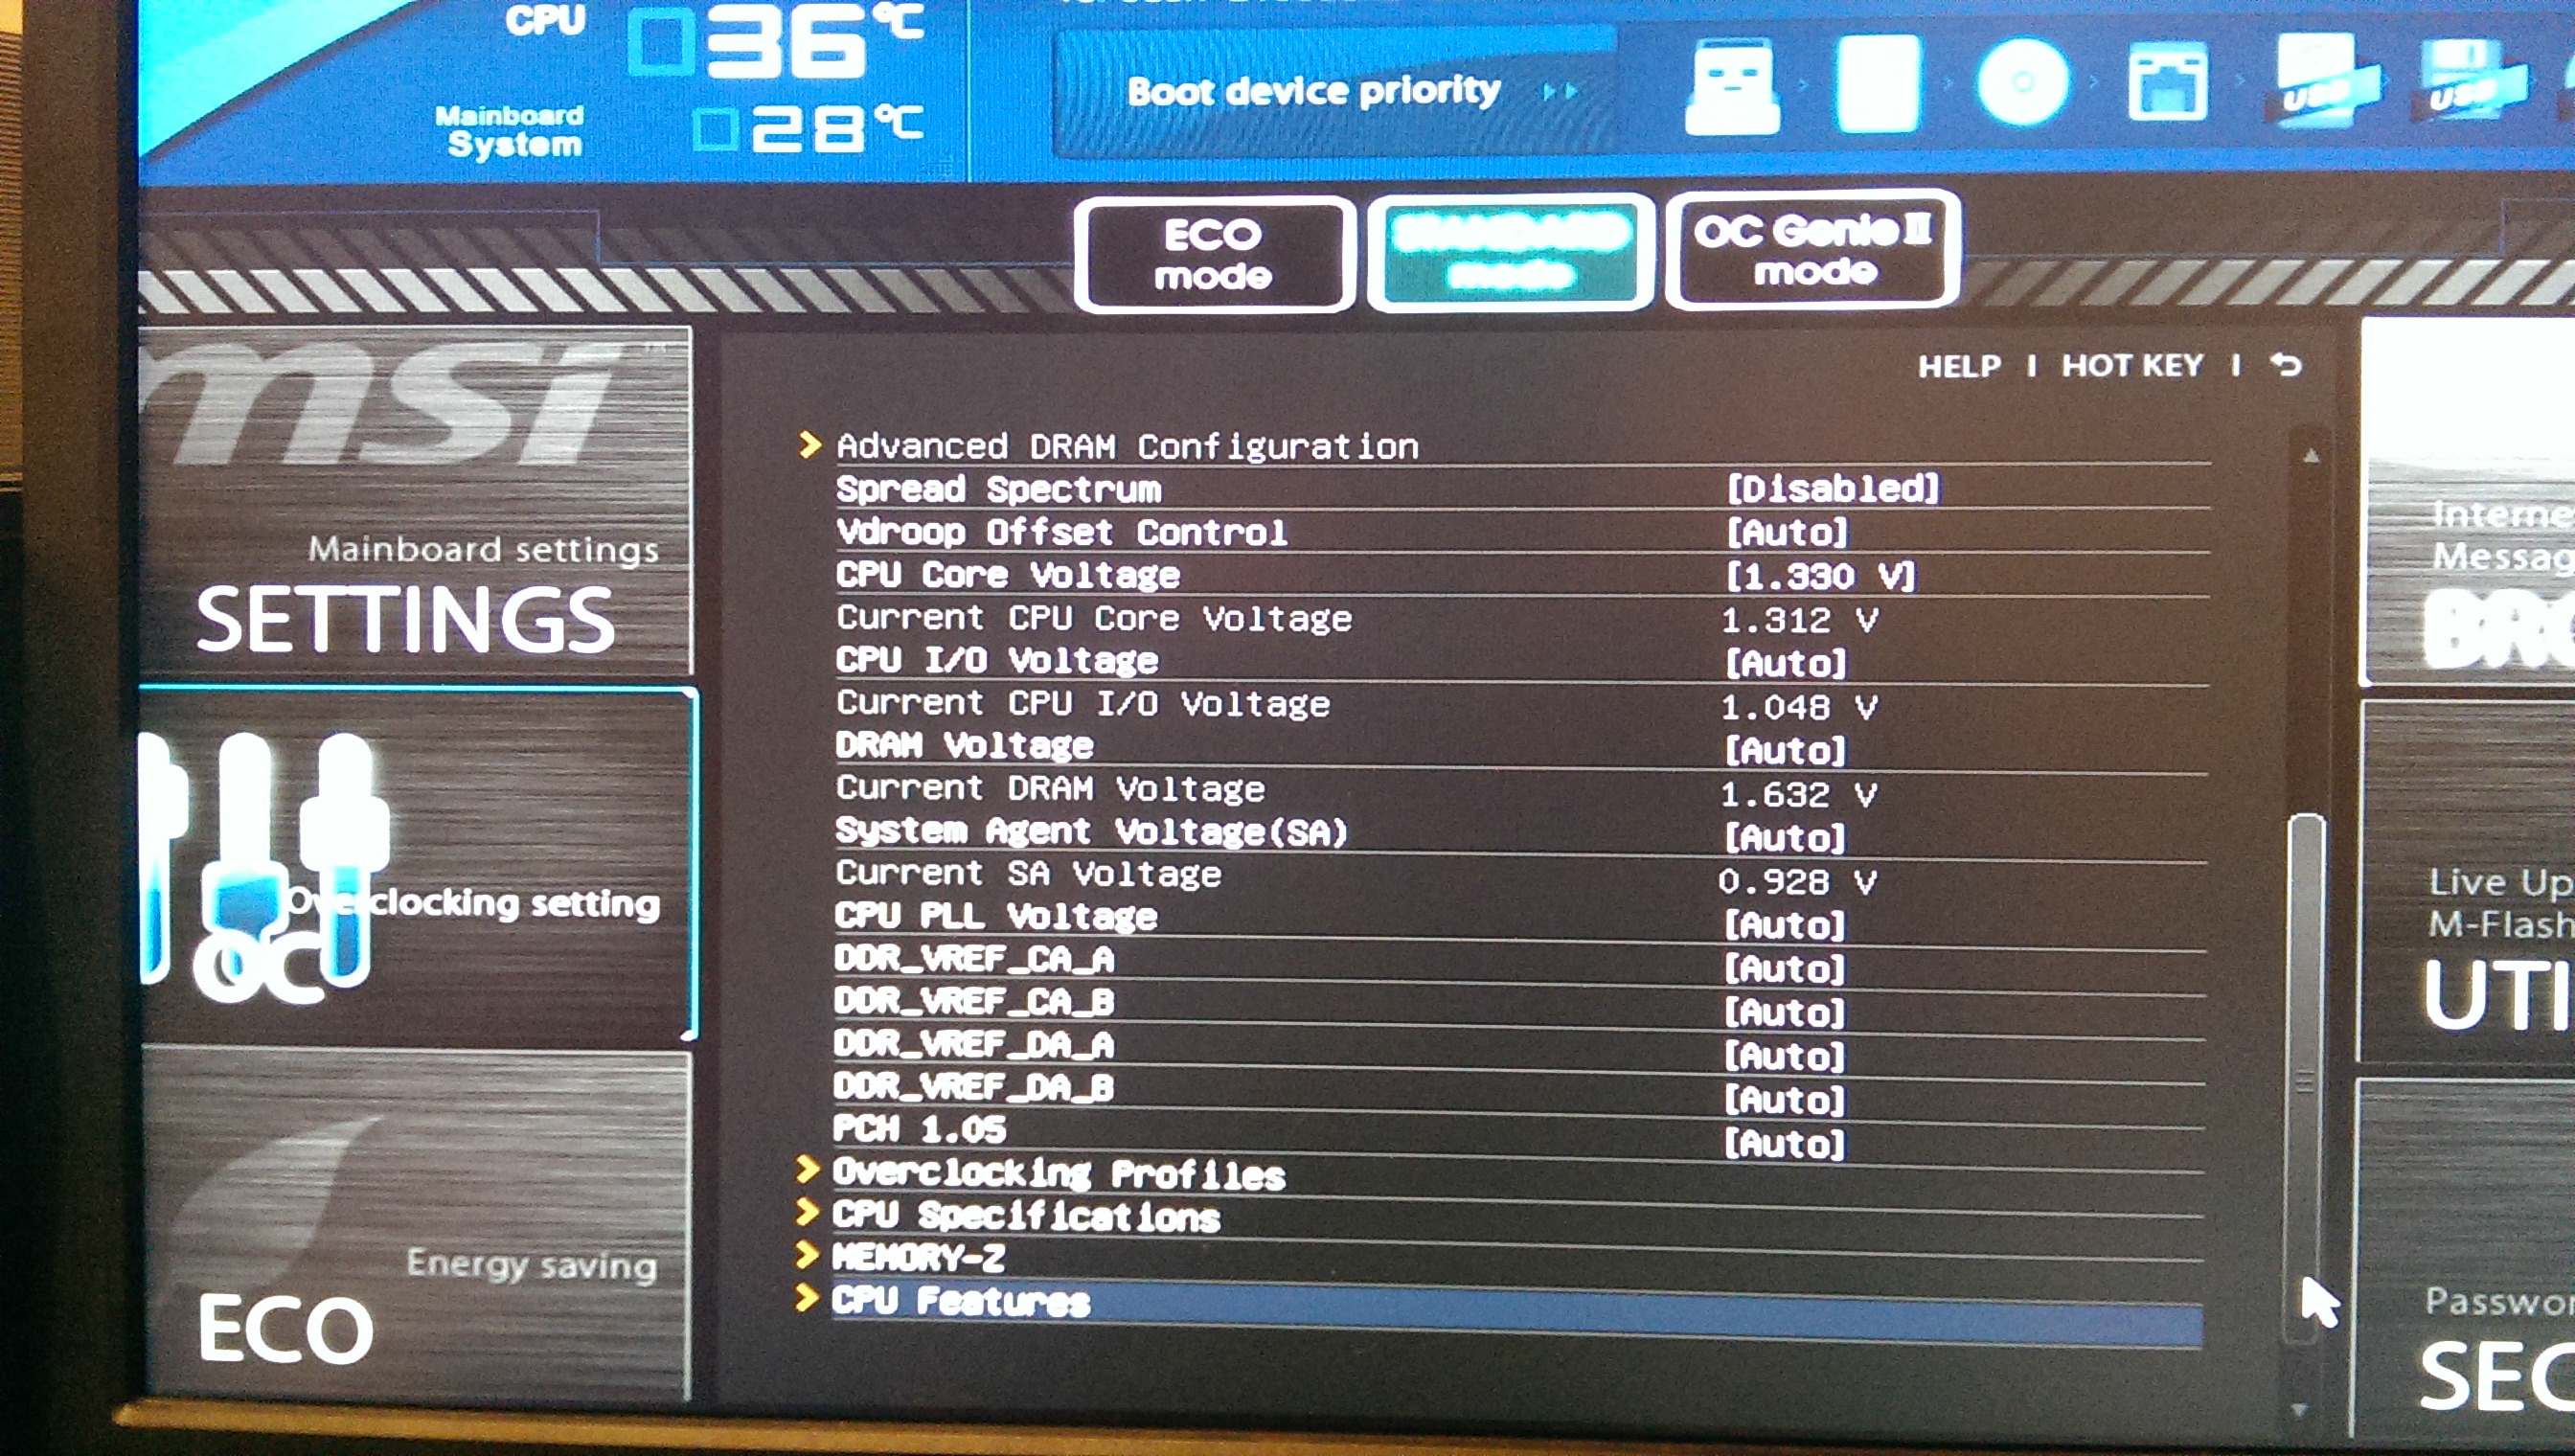 Best BIOS settings for Performance and Low Power when Idle